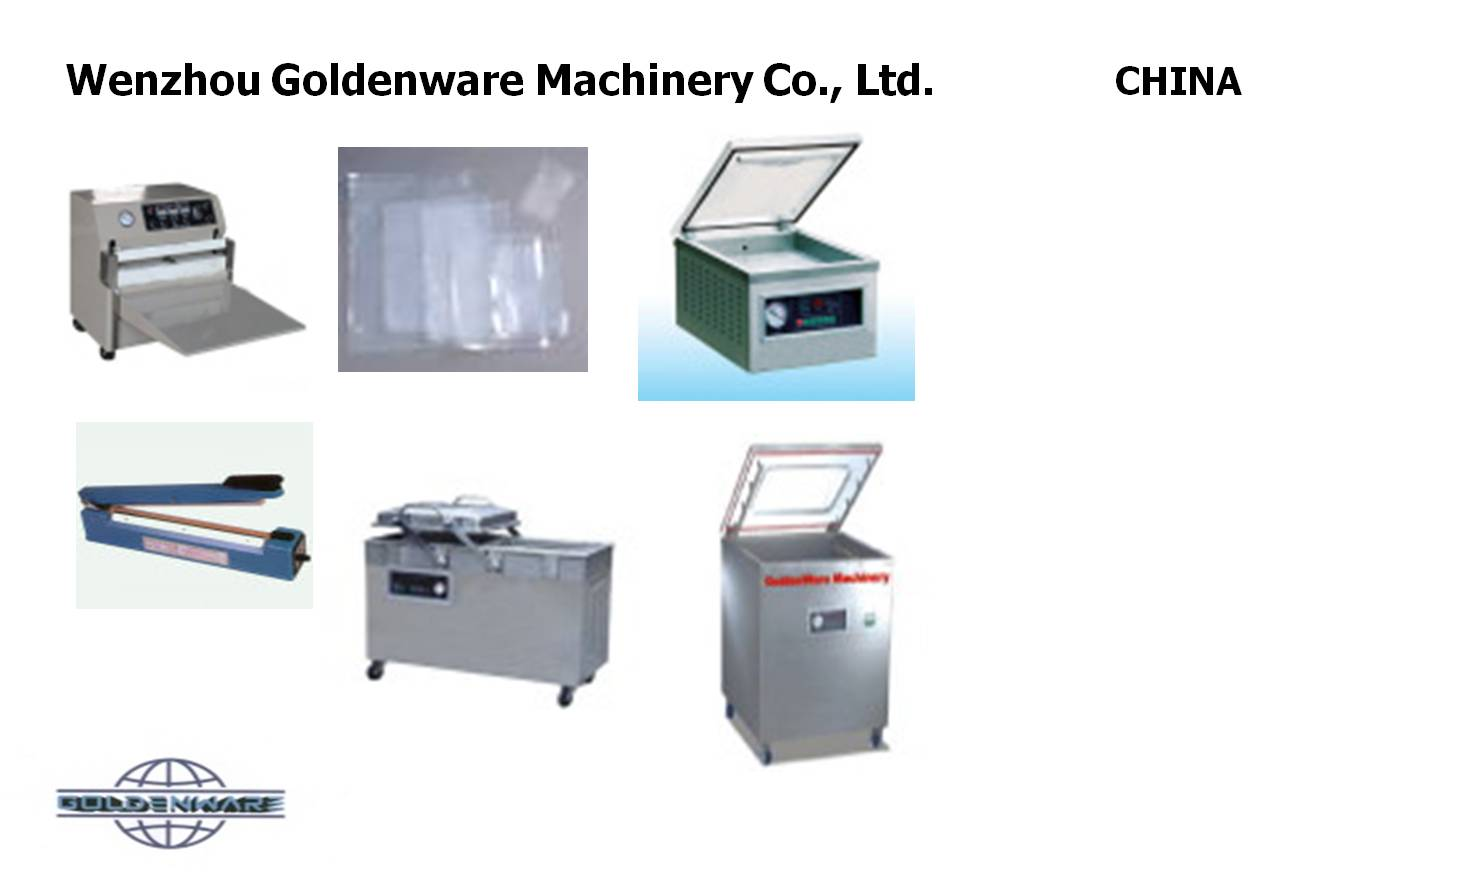 Telesemi Products - Wenzhou Goldenware